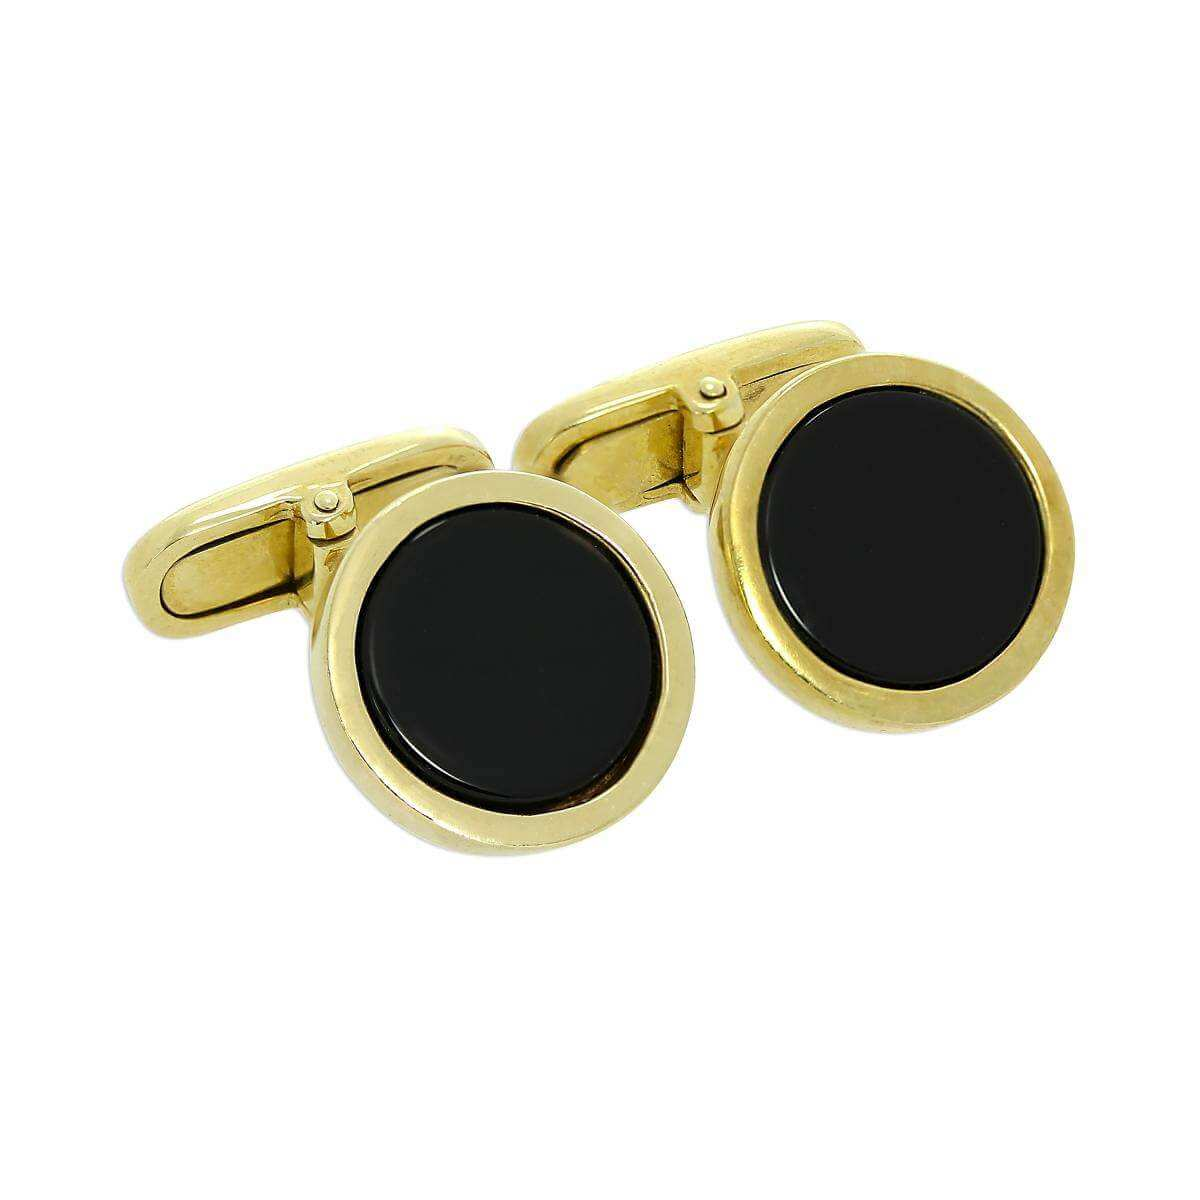 9ct Gold & Black Enamel Round Swivelback Cufflinks